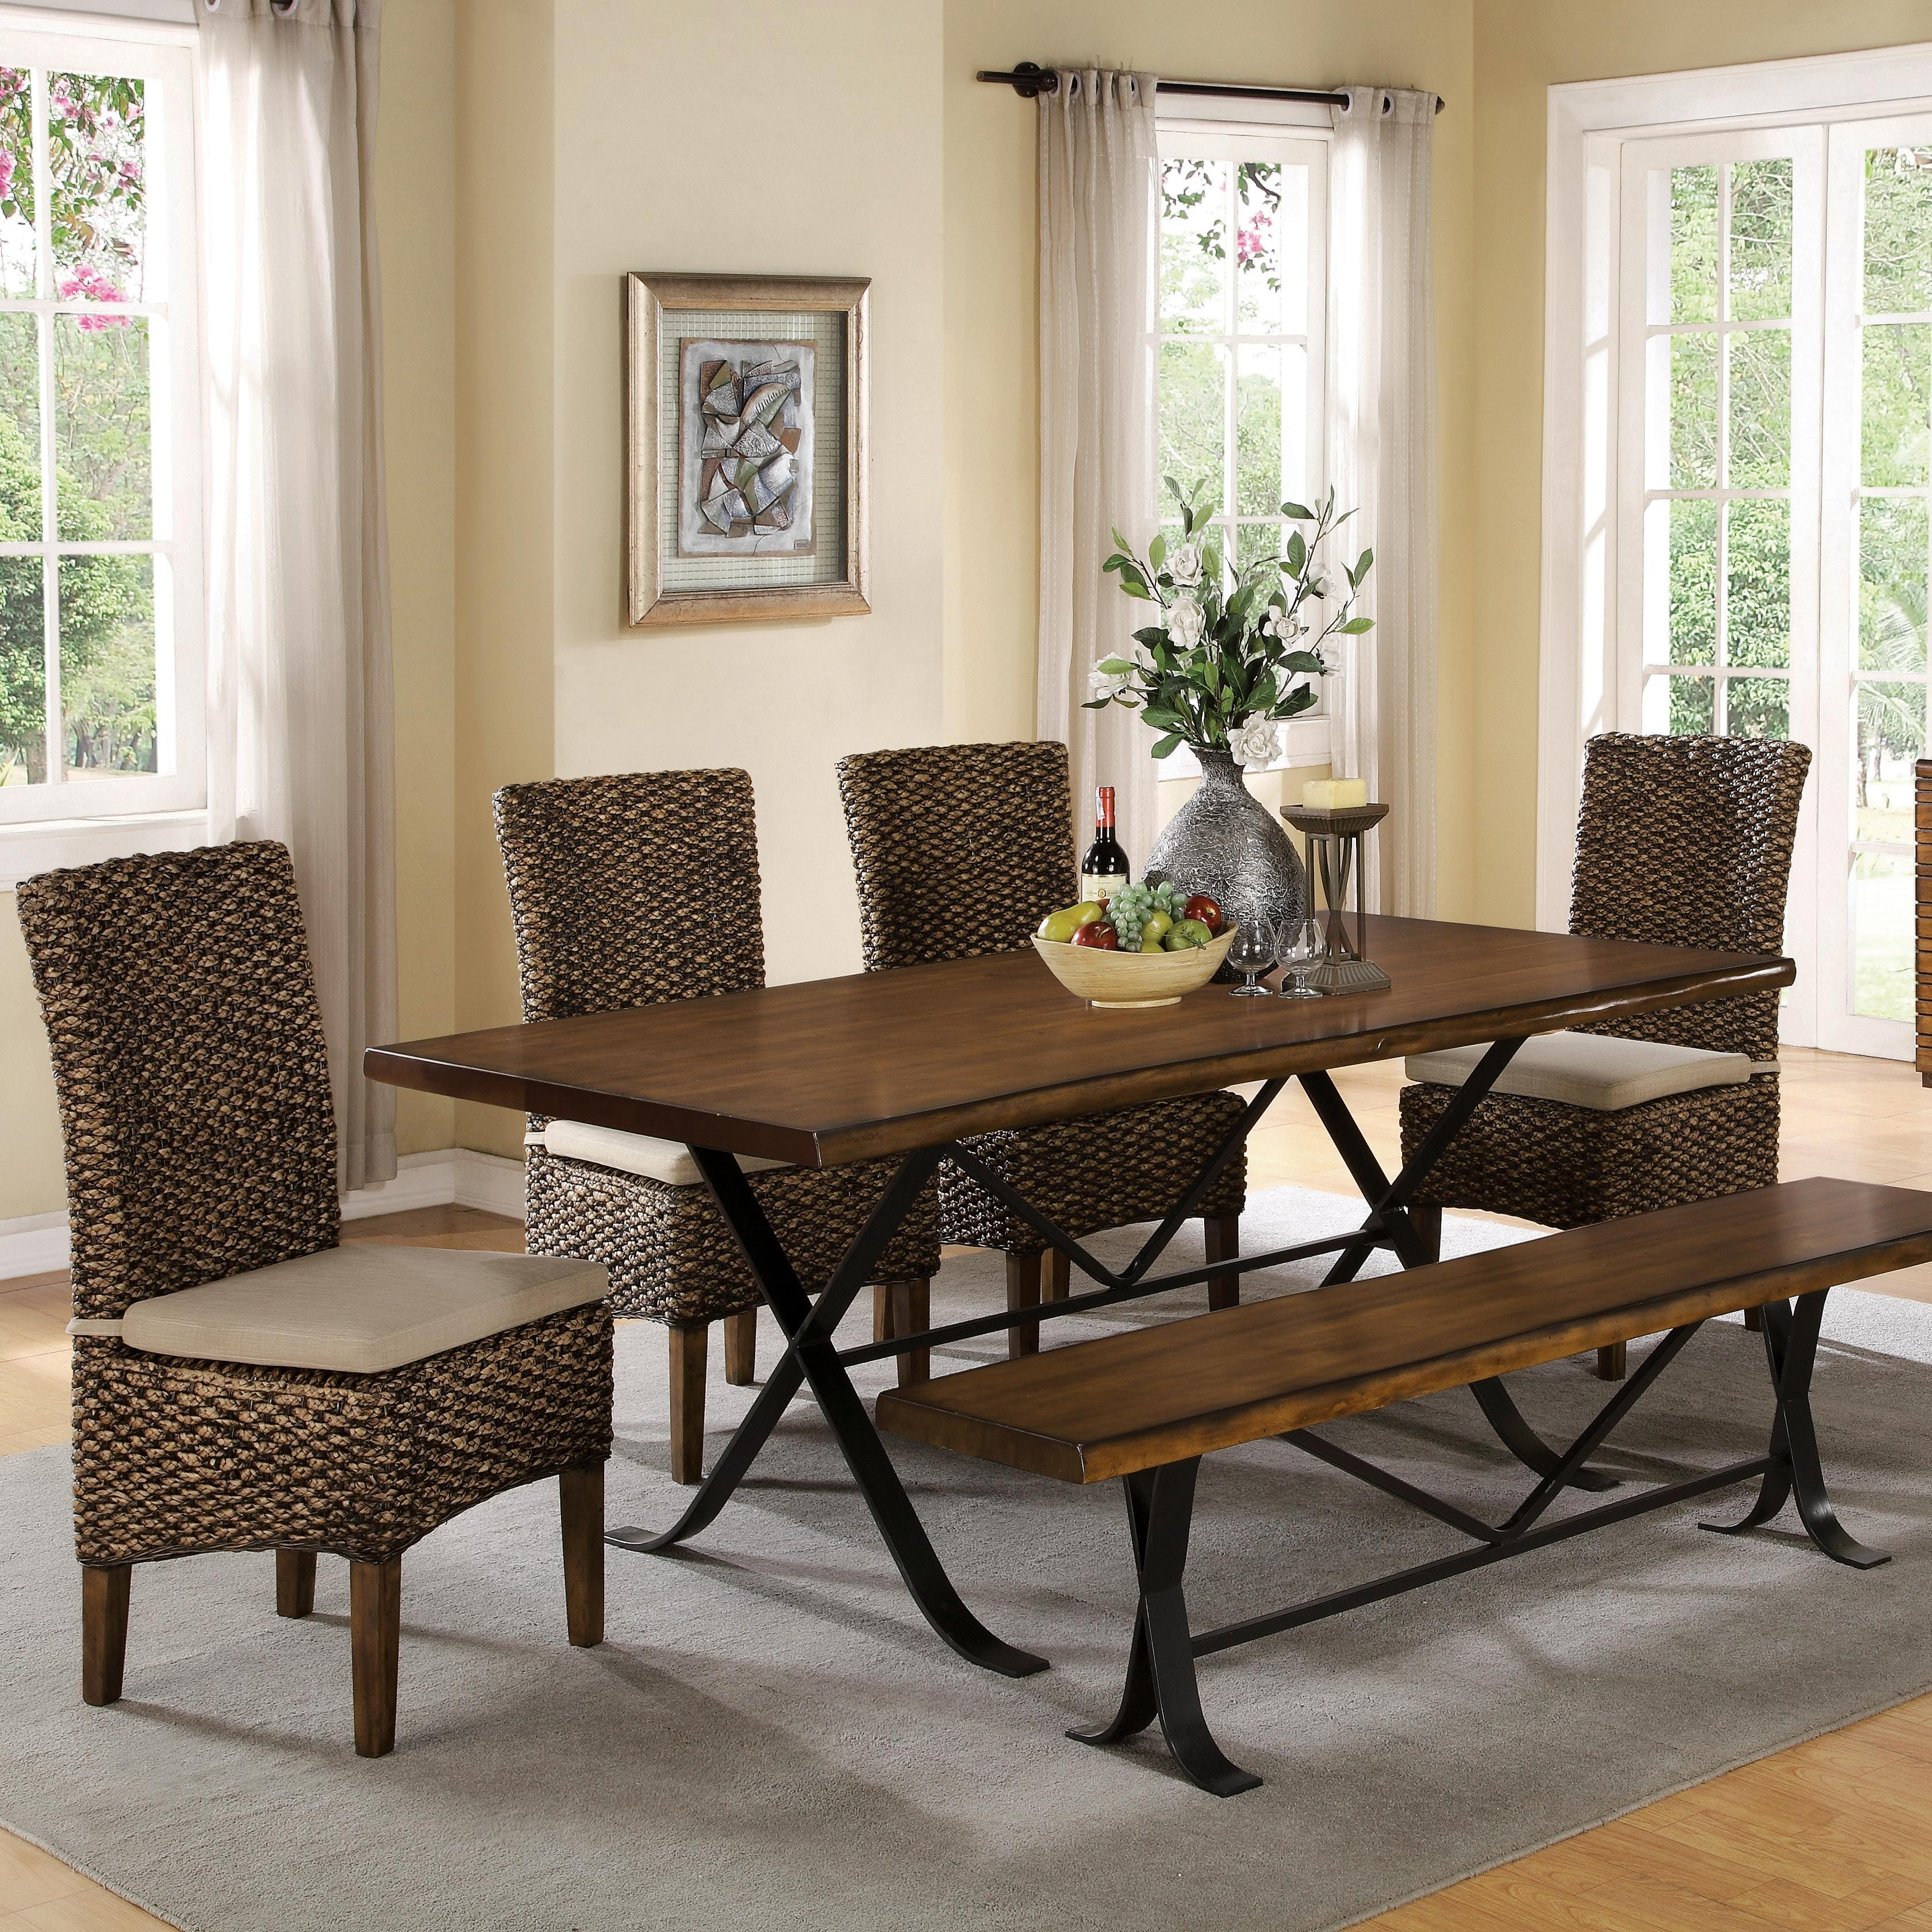 Tables N Chairs: Riverside Furniture Mix-N-Match Chairs Woven Leaf Side